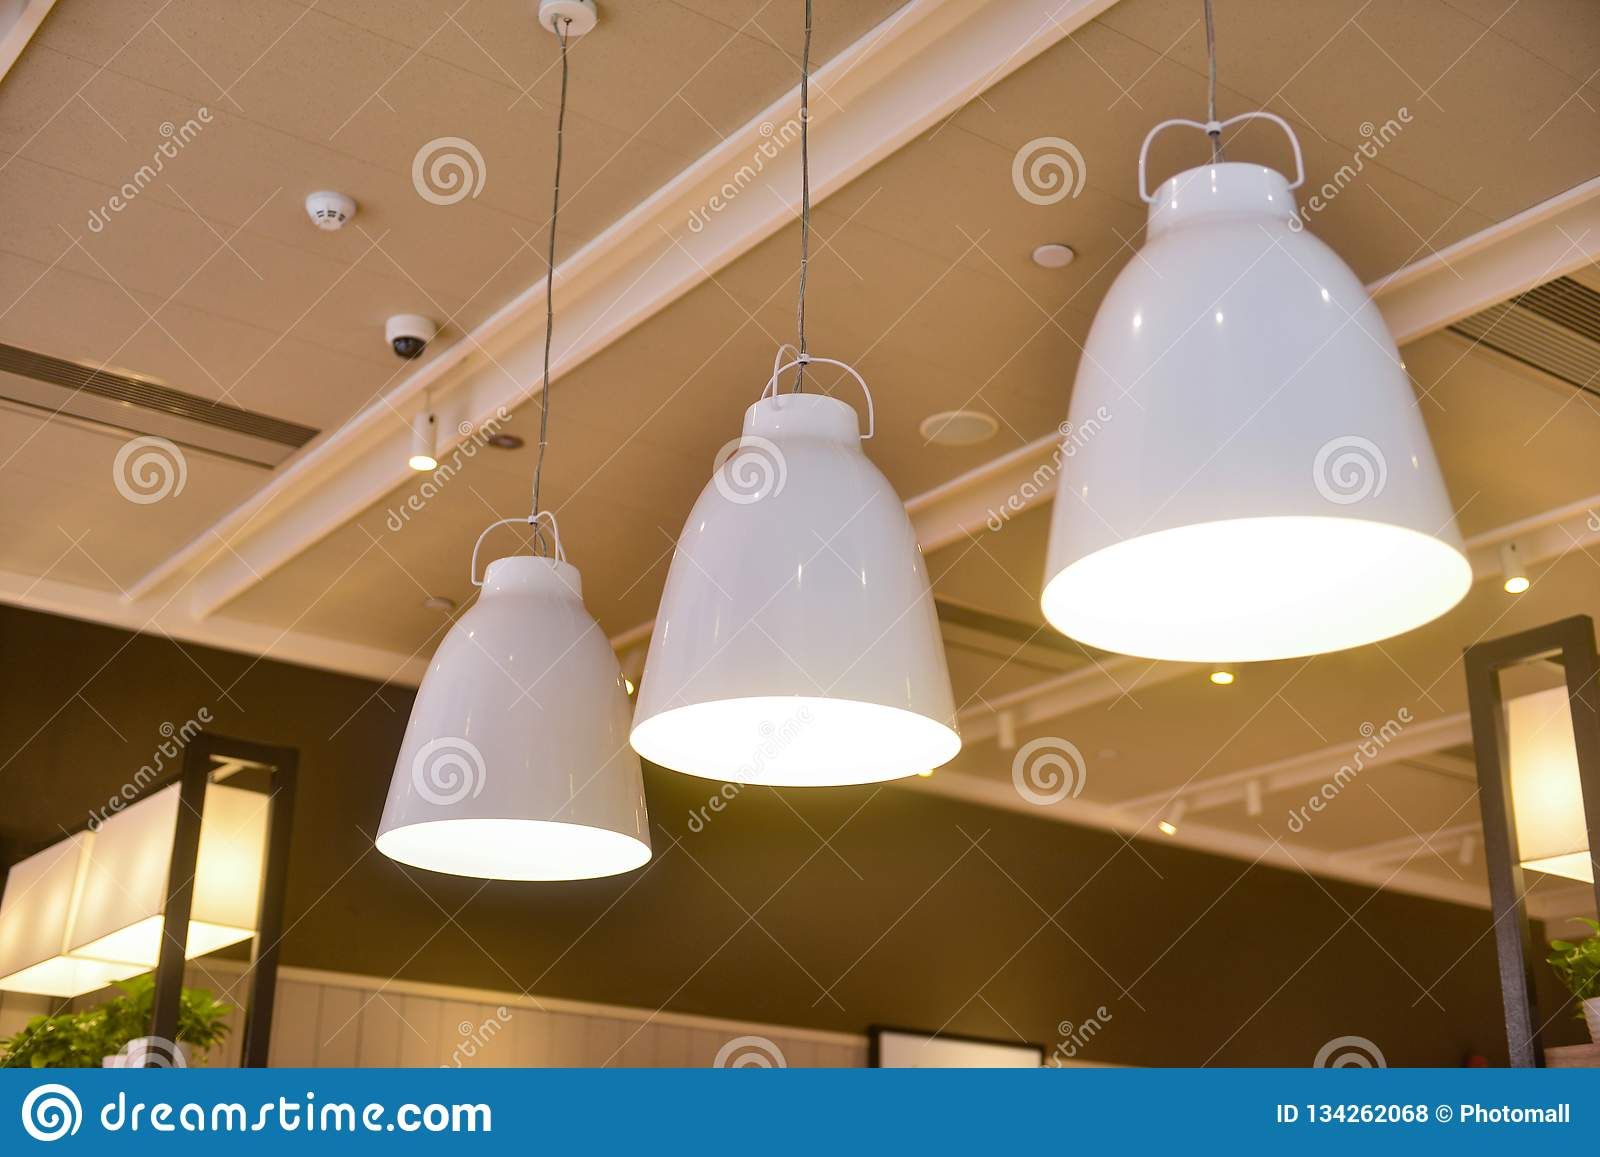 Led Hanging Lighting In Commercial Building Stock Photo Image Of Door Carving 134262068